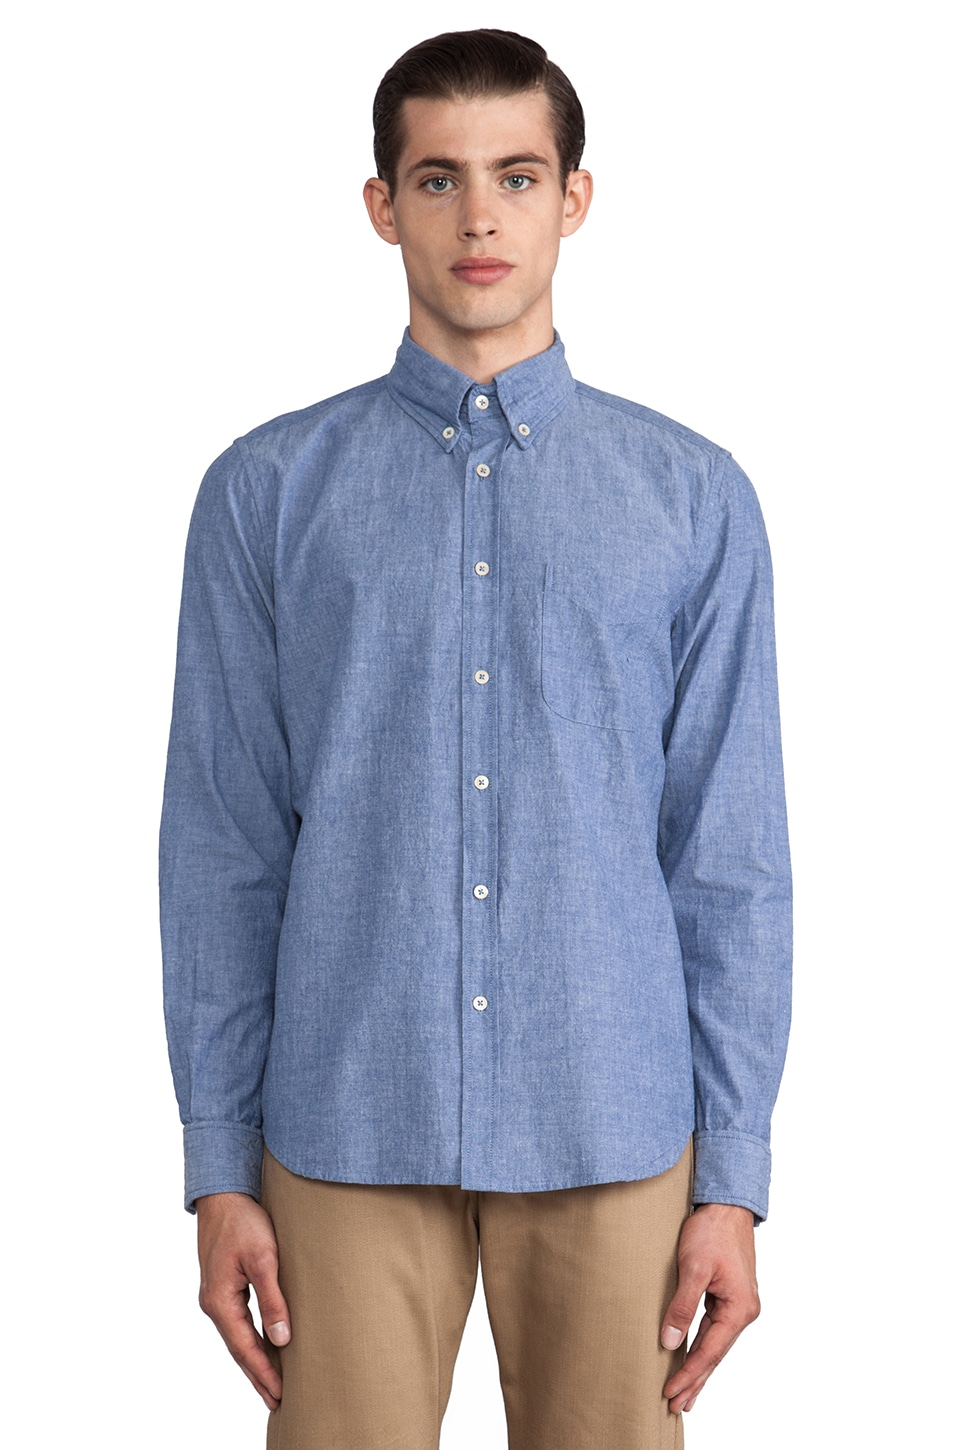 Steven Alan Classic Collegiate Shirt in Blue Chambray